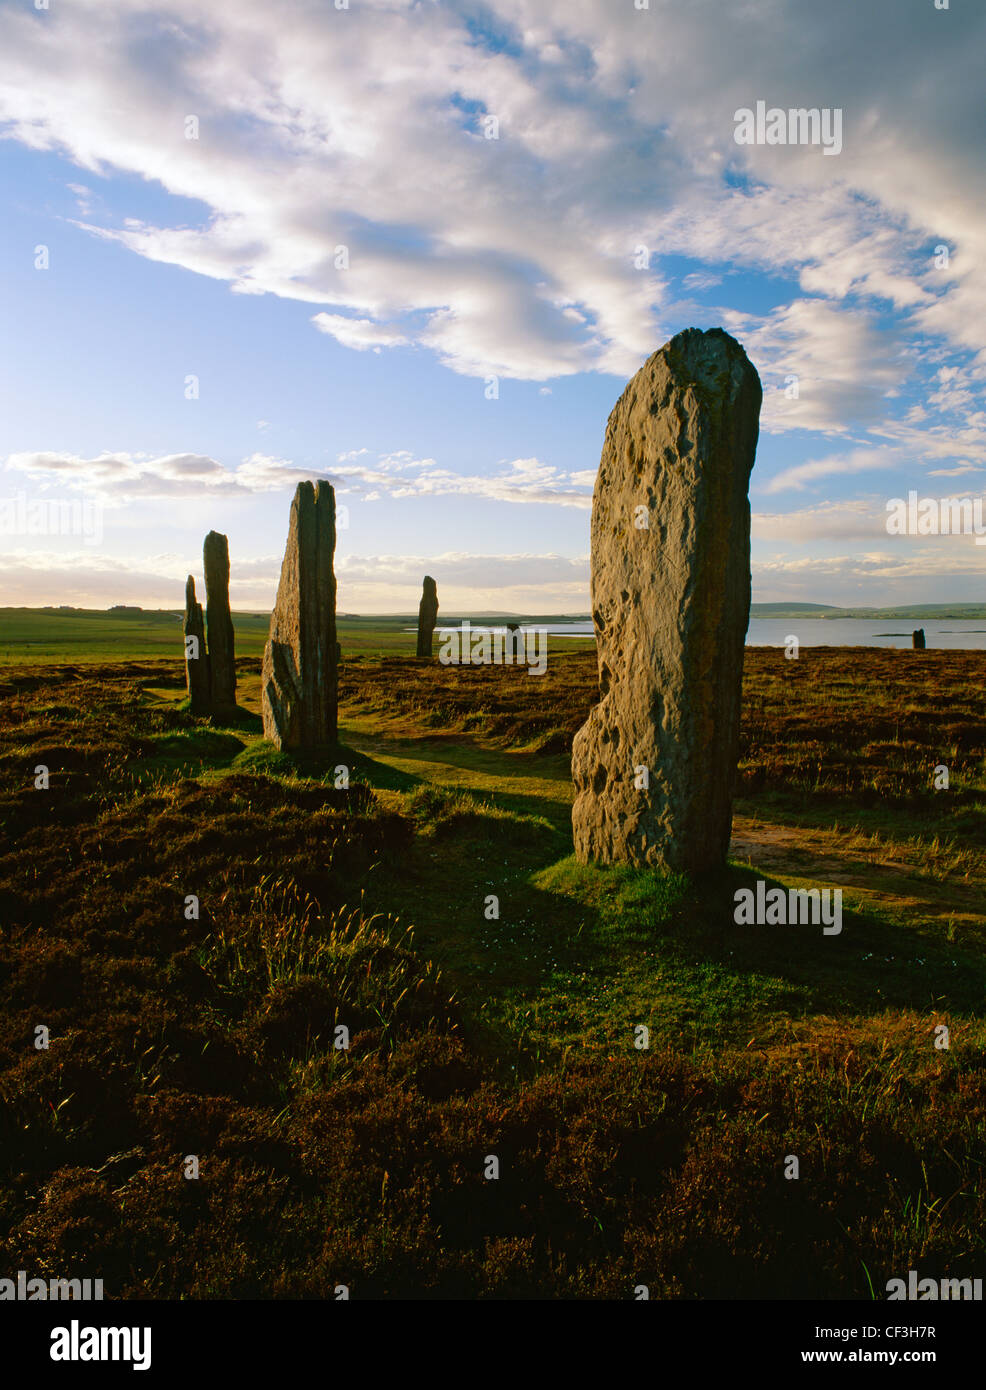 Ring of Brodgar stone circle and henge looking towards the Loch of Harray. - Stock Image